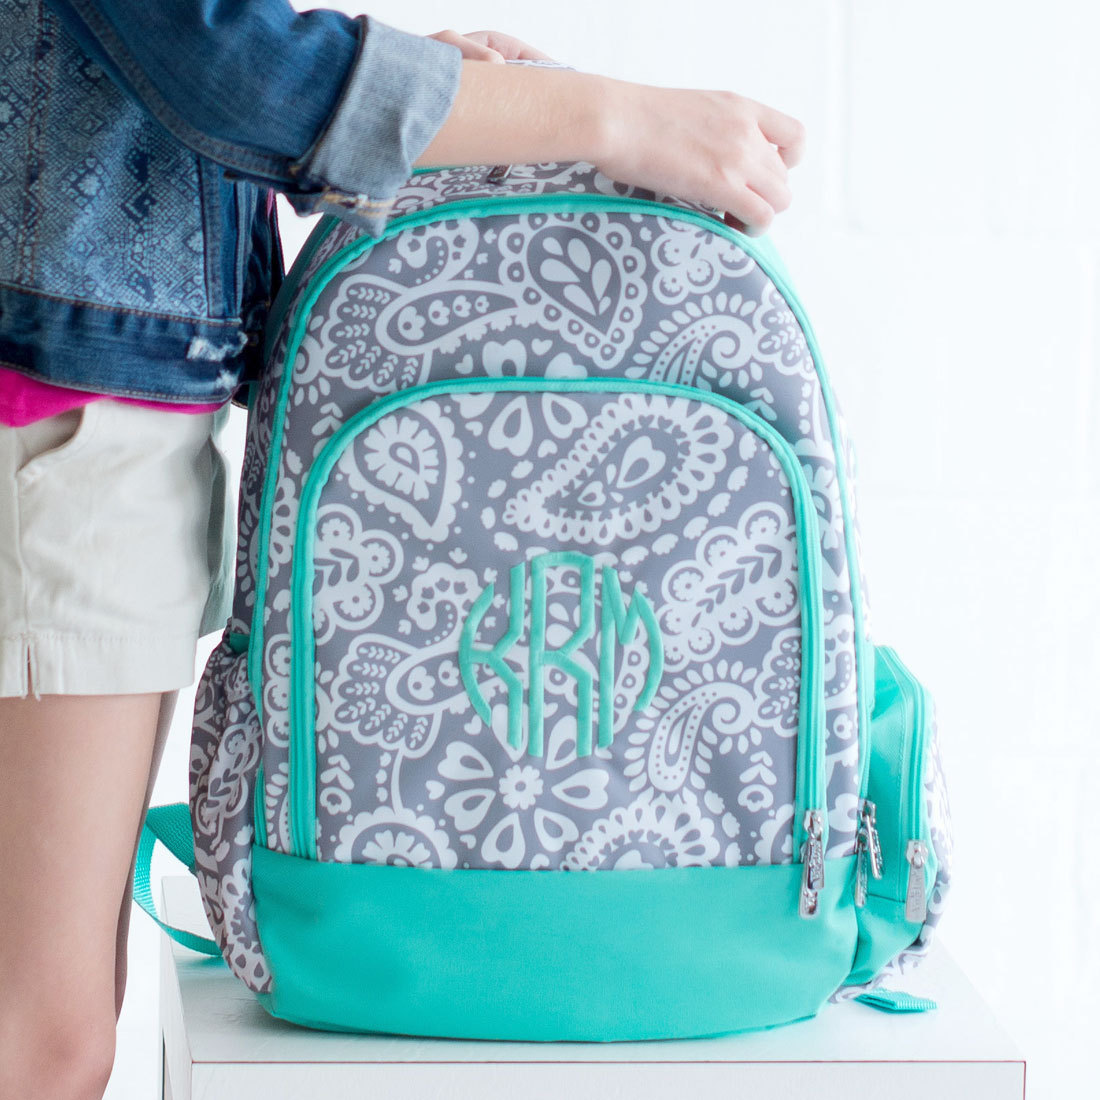 Monogrammed Backpacks For Girls tiQA6z0J